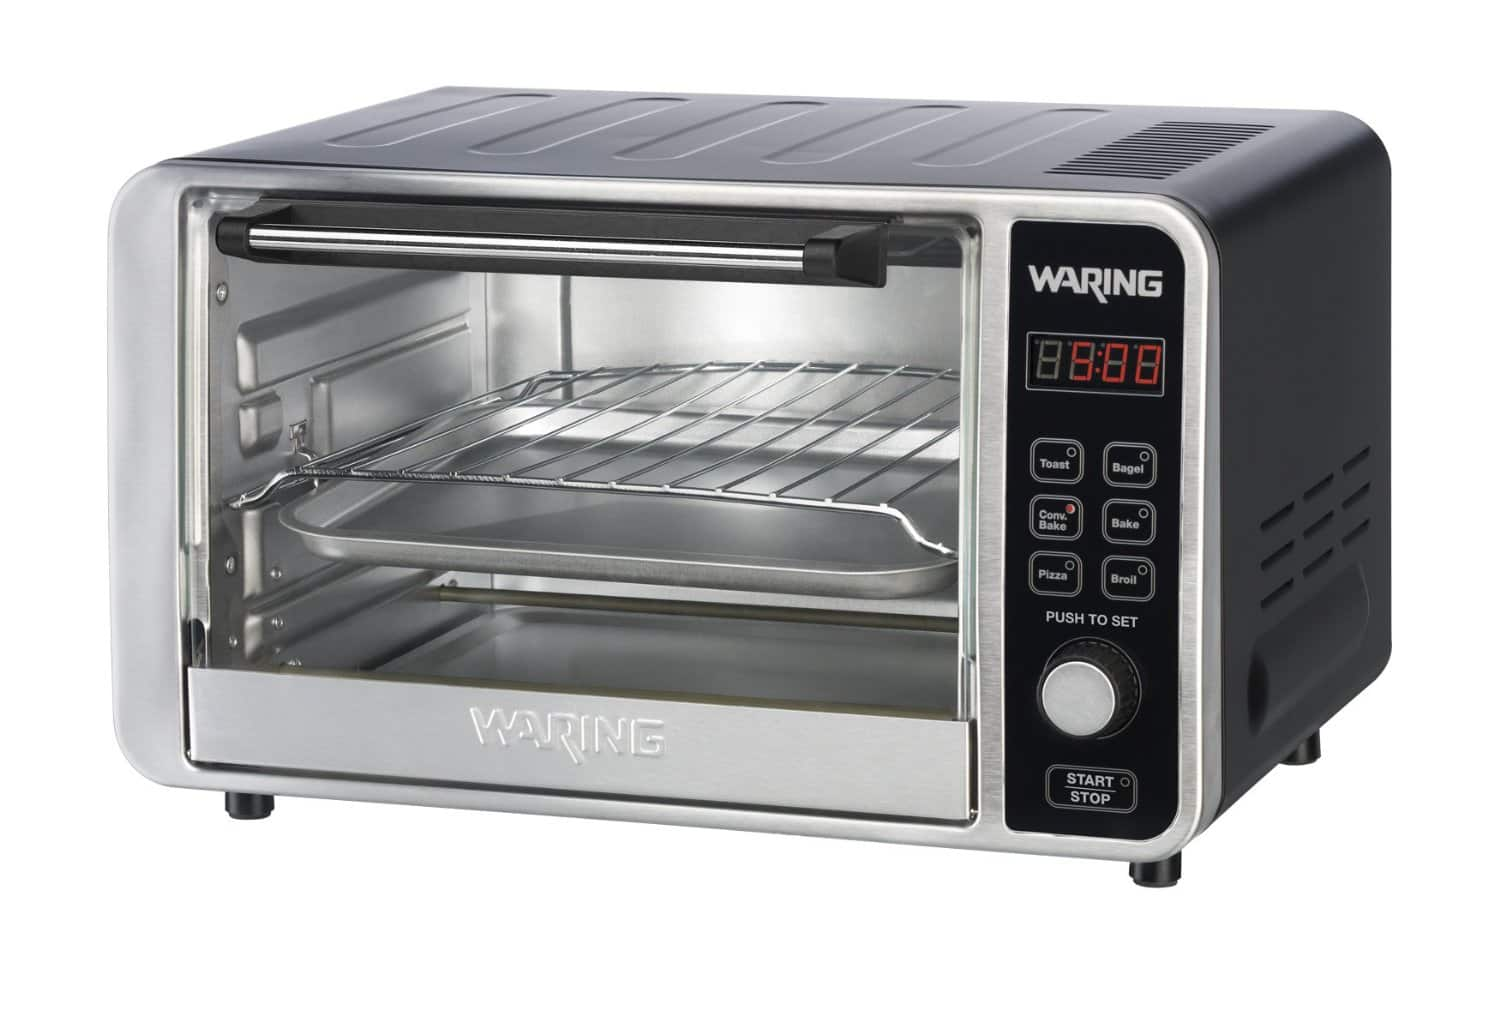 Waring Pro TC0650 Digital Convection Toaster/Pizza Oven (Black) $49.99 + Free Shipping